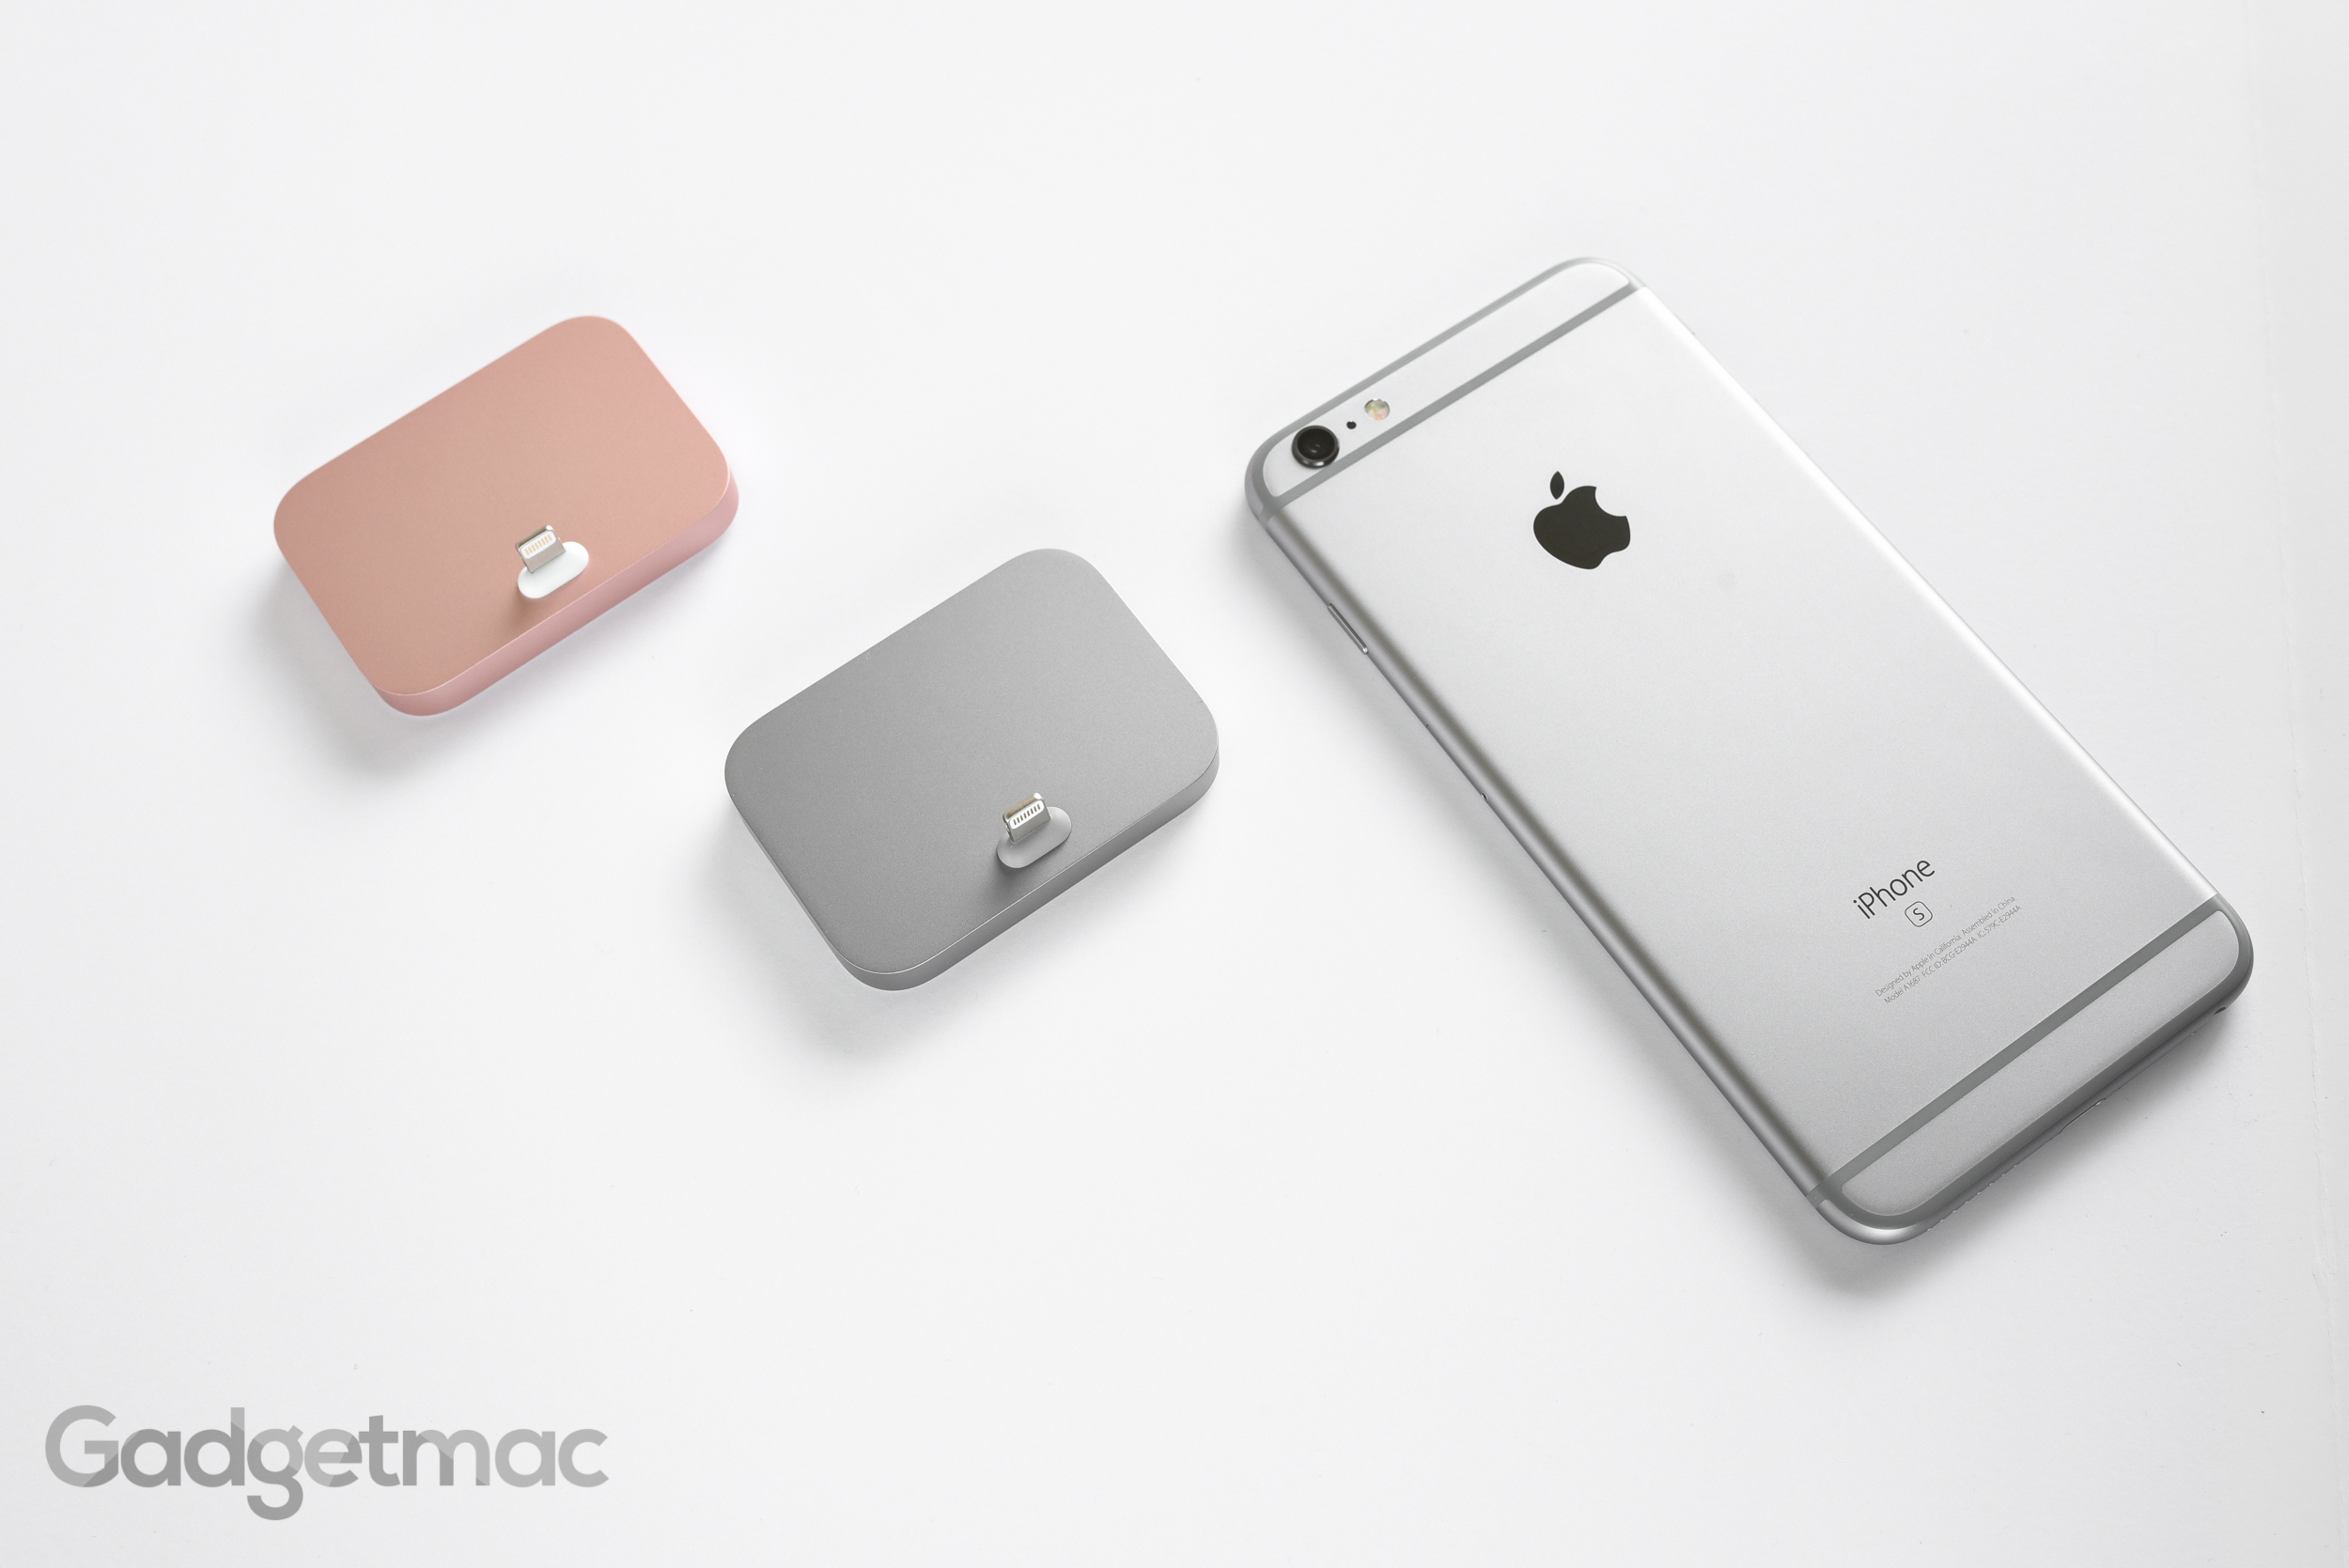 apple-aluminum-lightning-dock-for-iphone-6s-hero.jpg